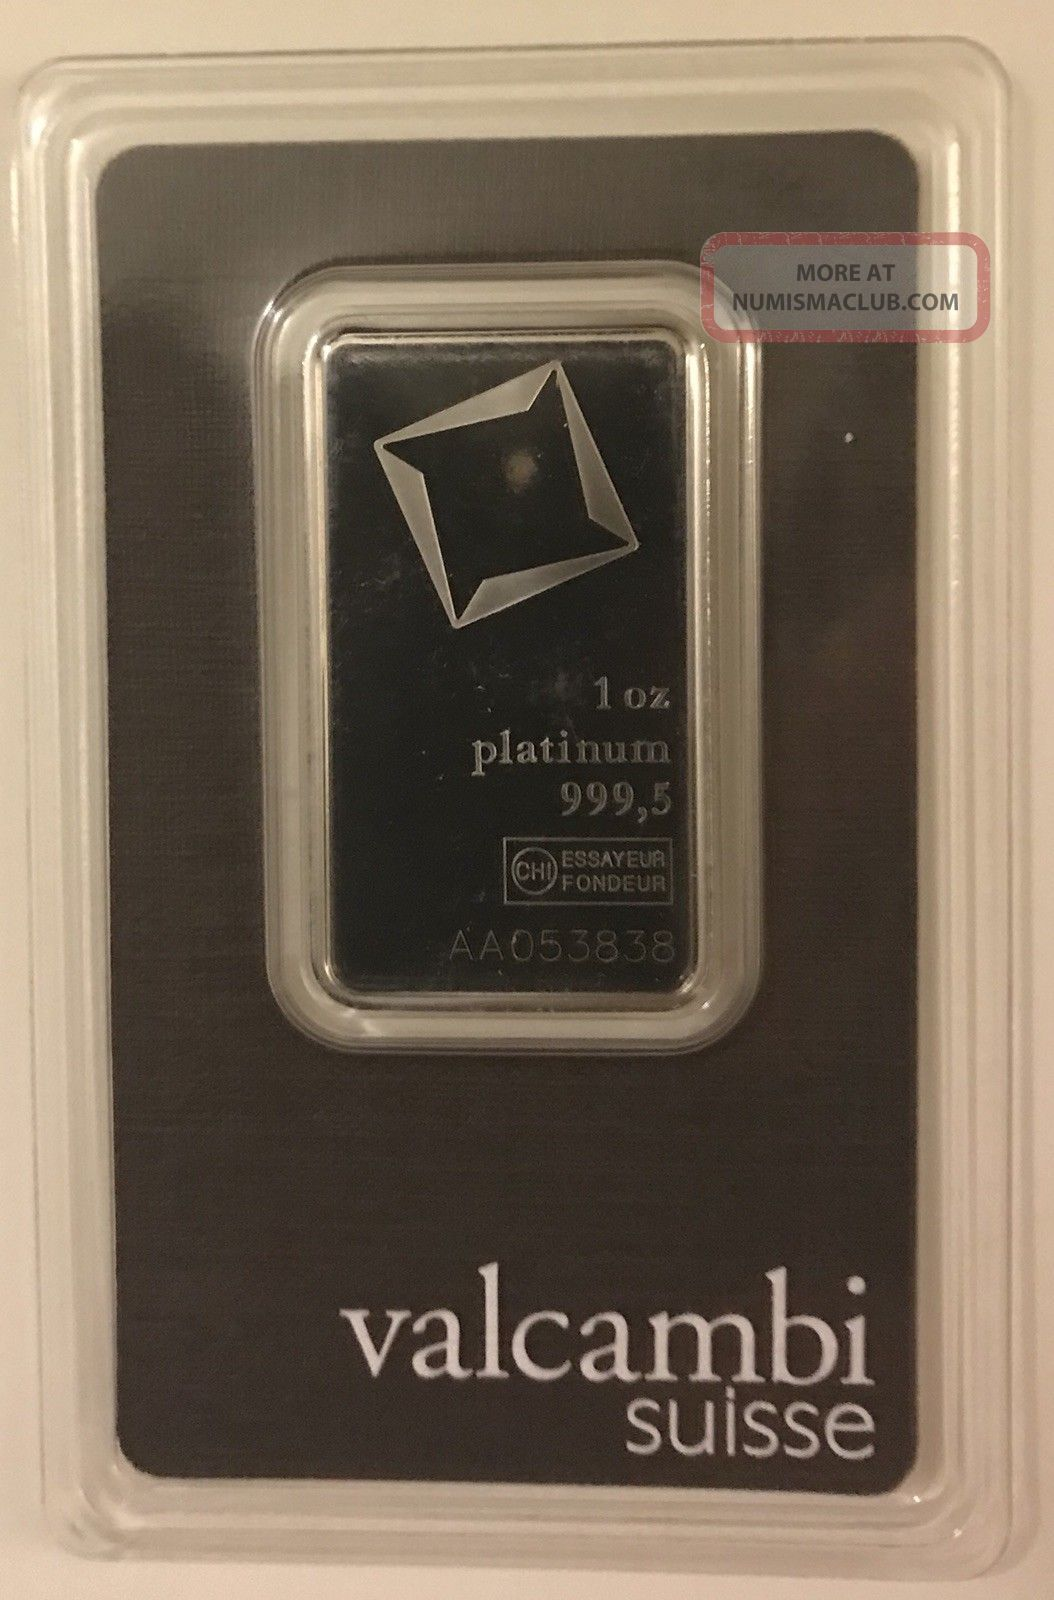 1 Oz.  Platinum Bar - Valcambi Suisse - 999.  5 Fine In Assay Bars & Rounds photo